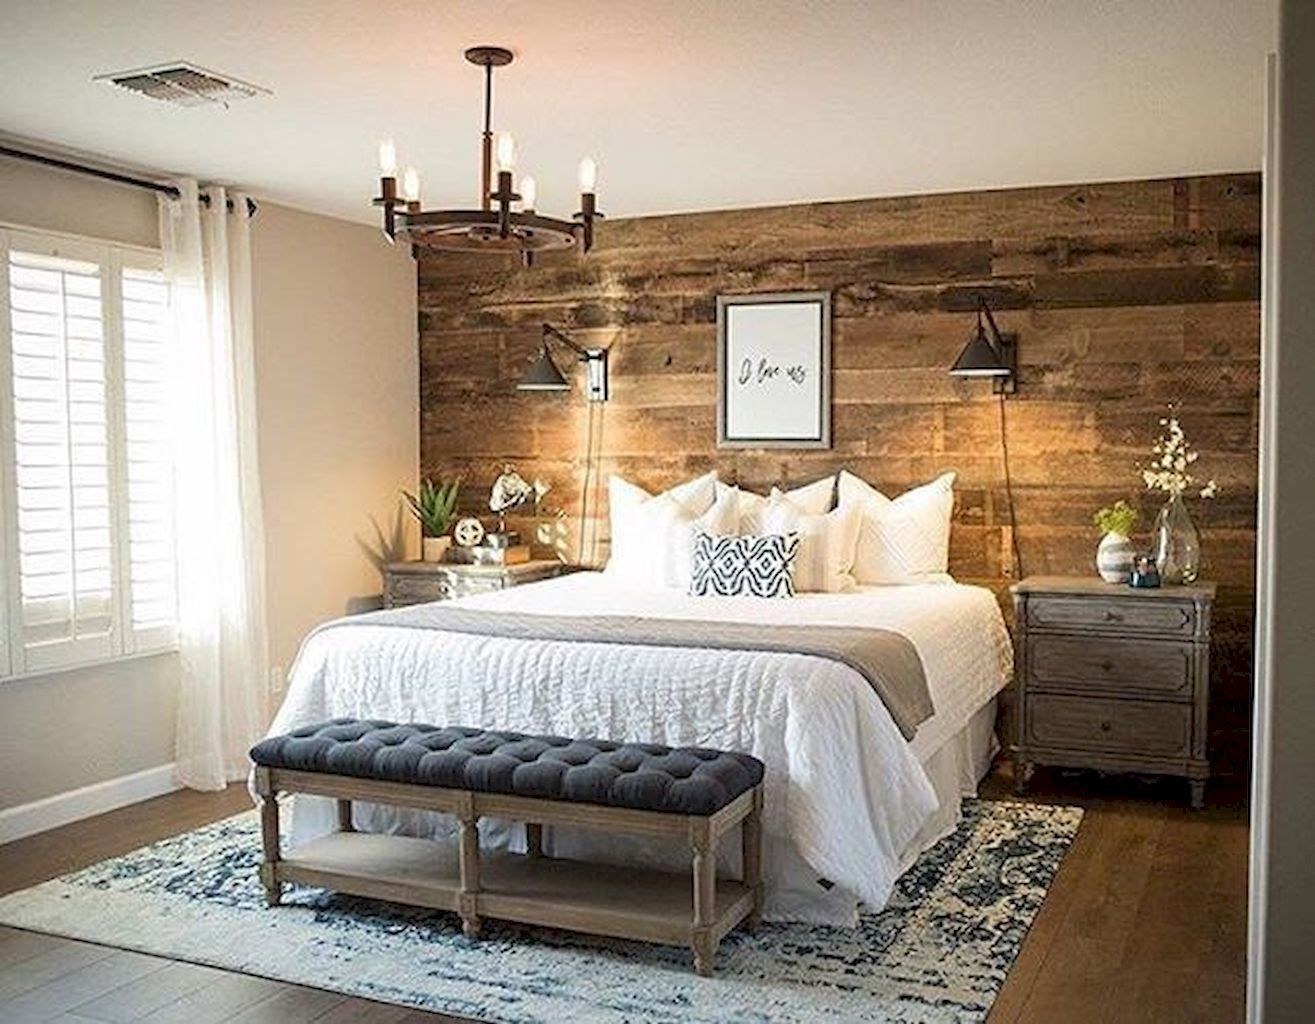 Neutral Bedroom Decorating Ideas Part - 27: Nice 50 Elegant Master Bedroom Décor Ideas On A Budget Https://homeastern.